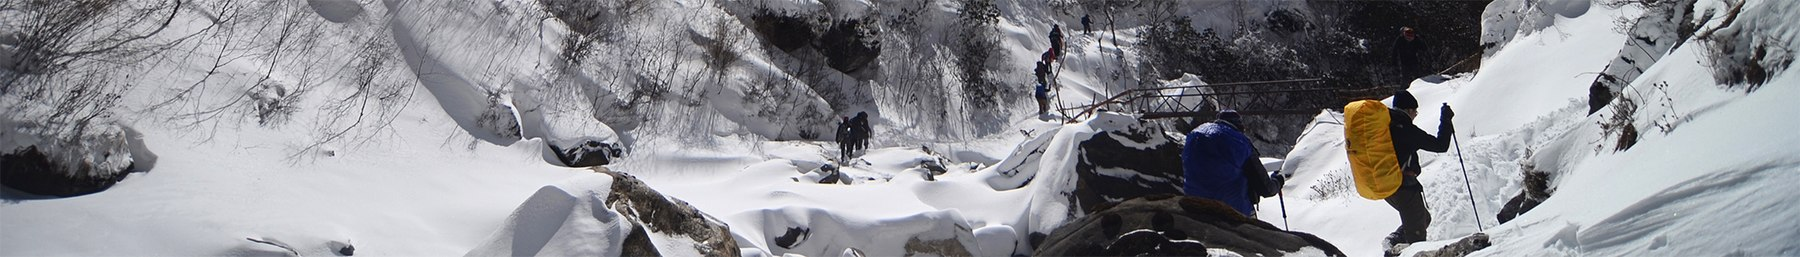 Trekking to Annapurna Base Camp banner.jpg